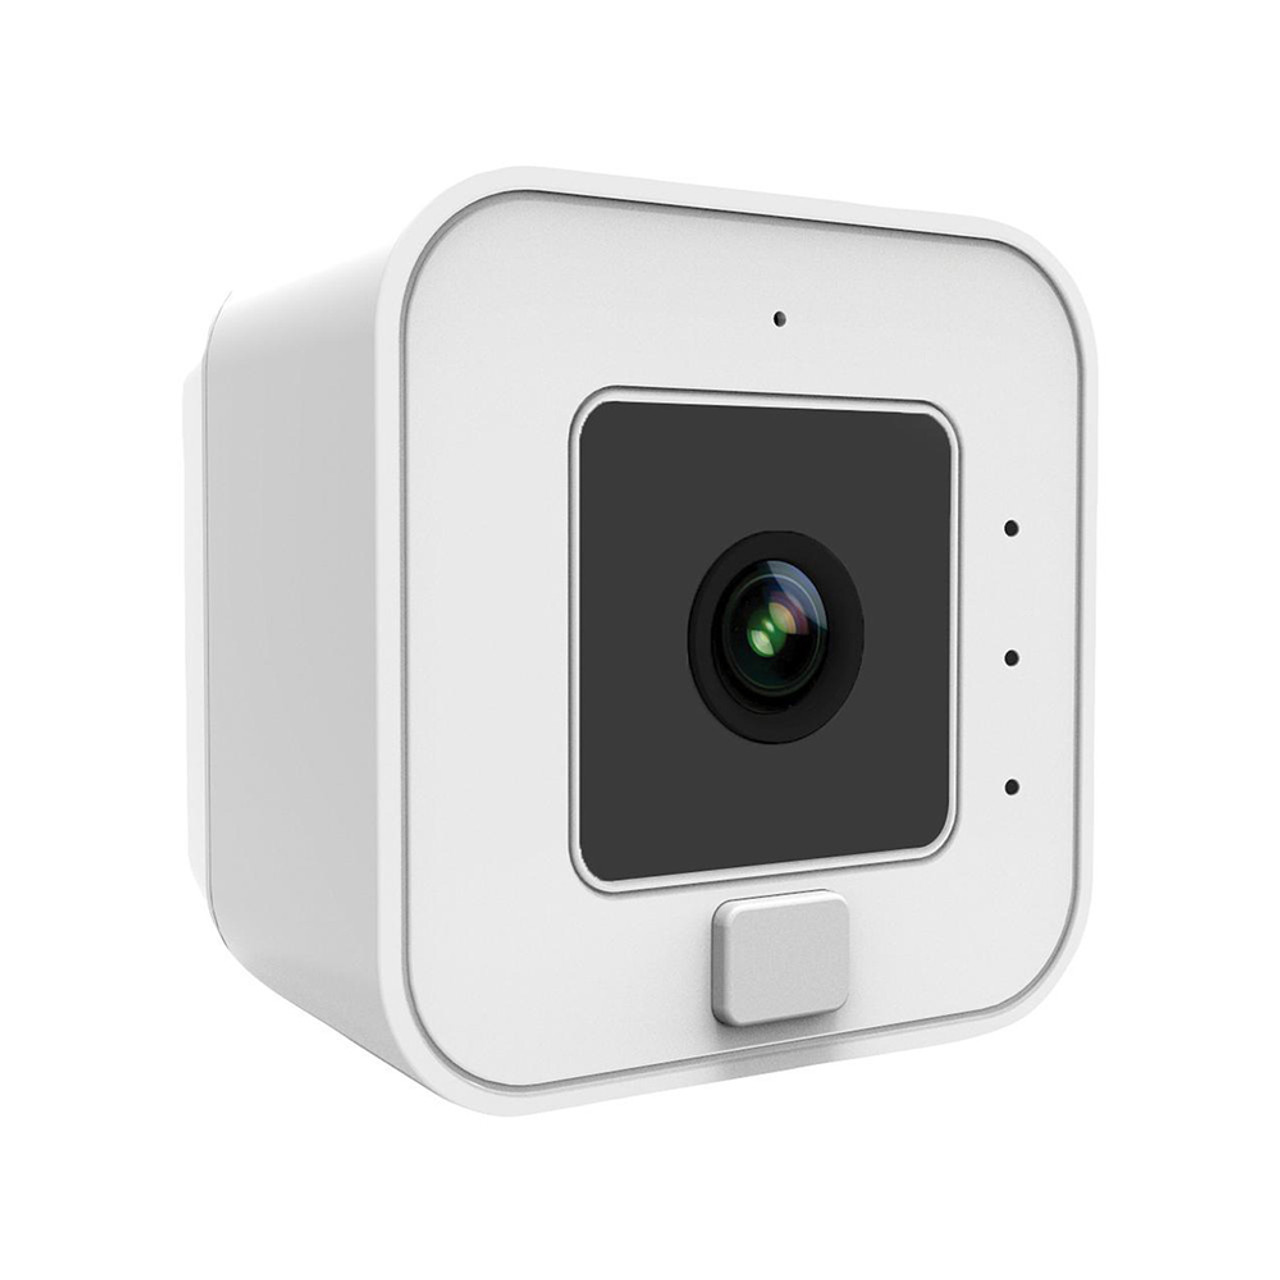 Switchmate Cube Wireless Smart Home Security Camera (2-Pack) $49.99 (62% OFF)